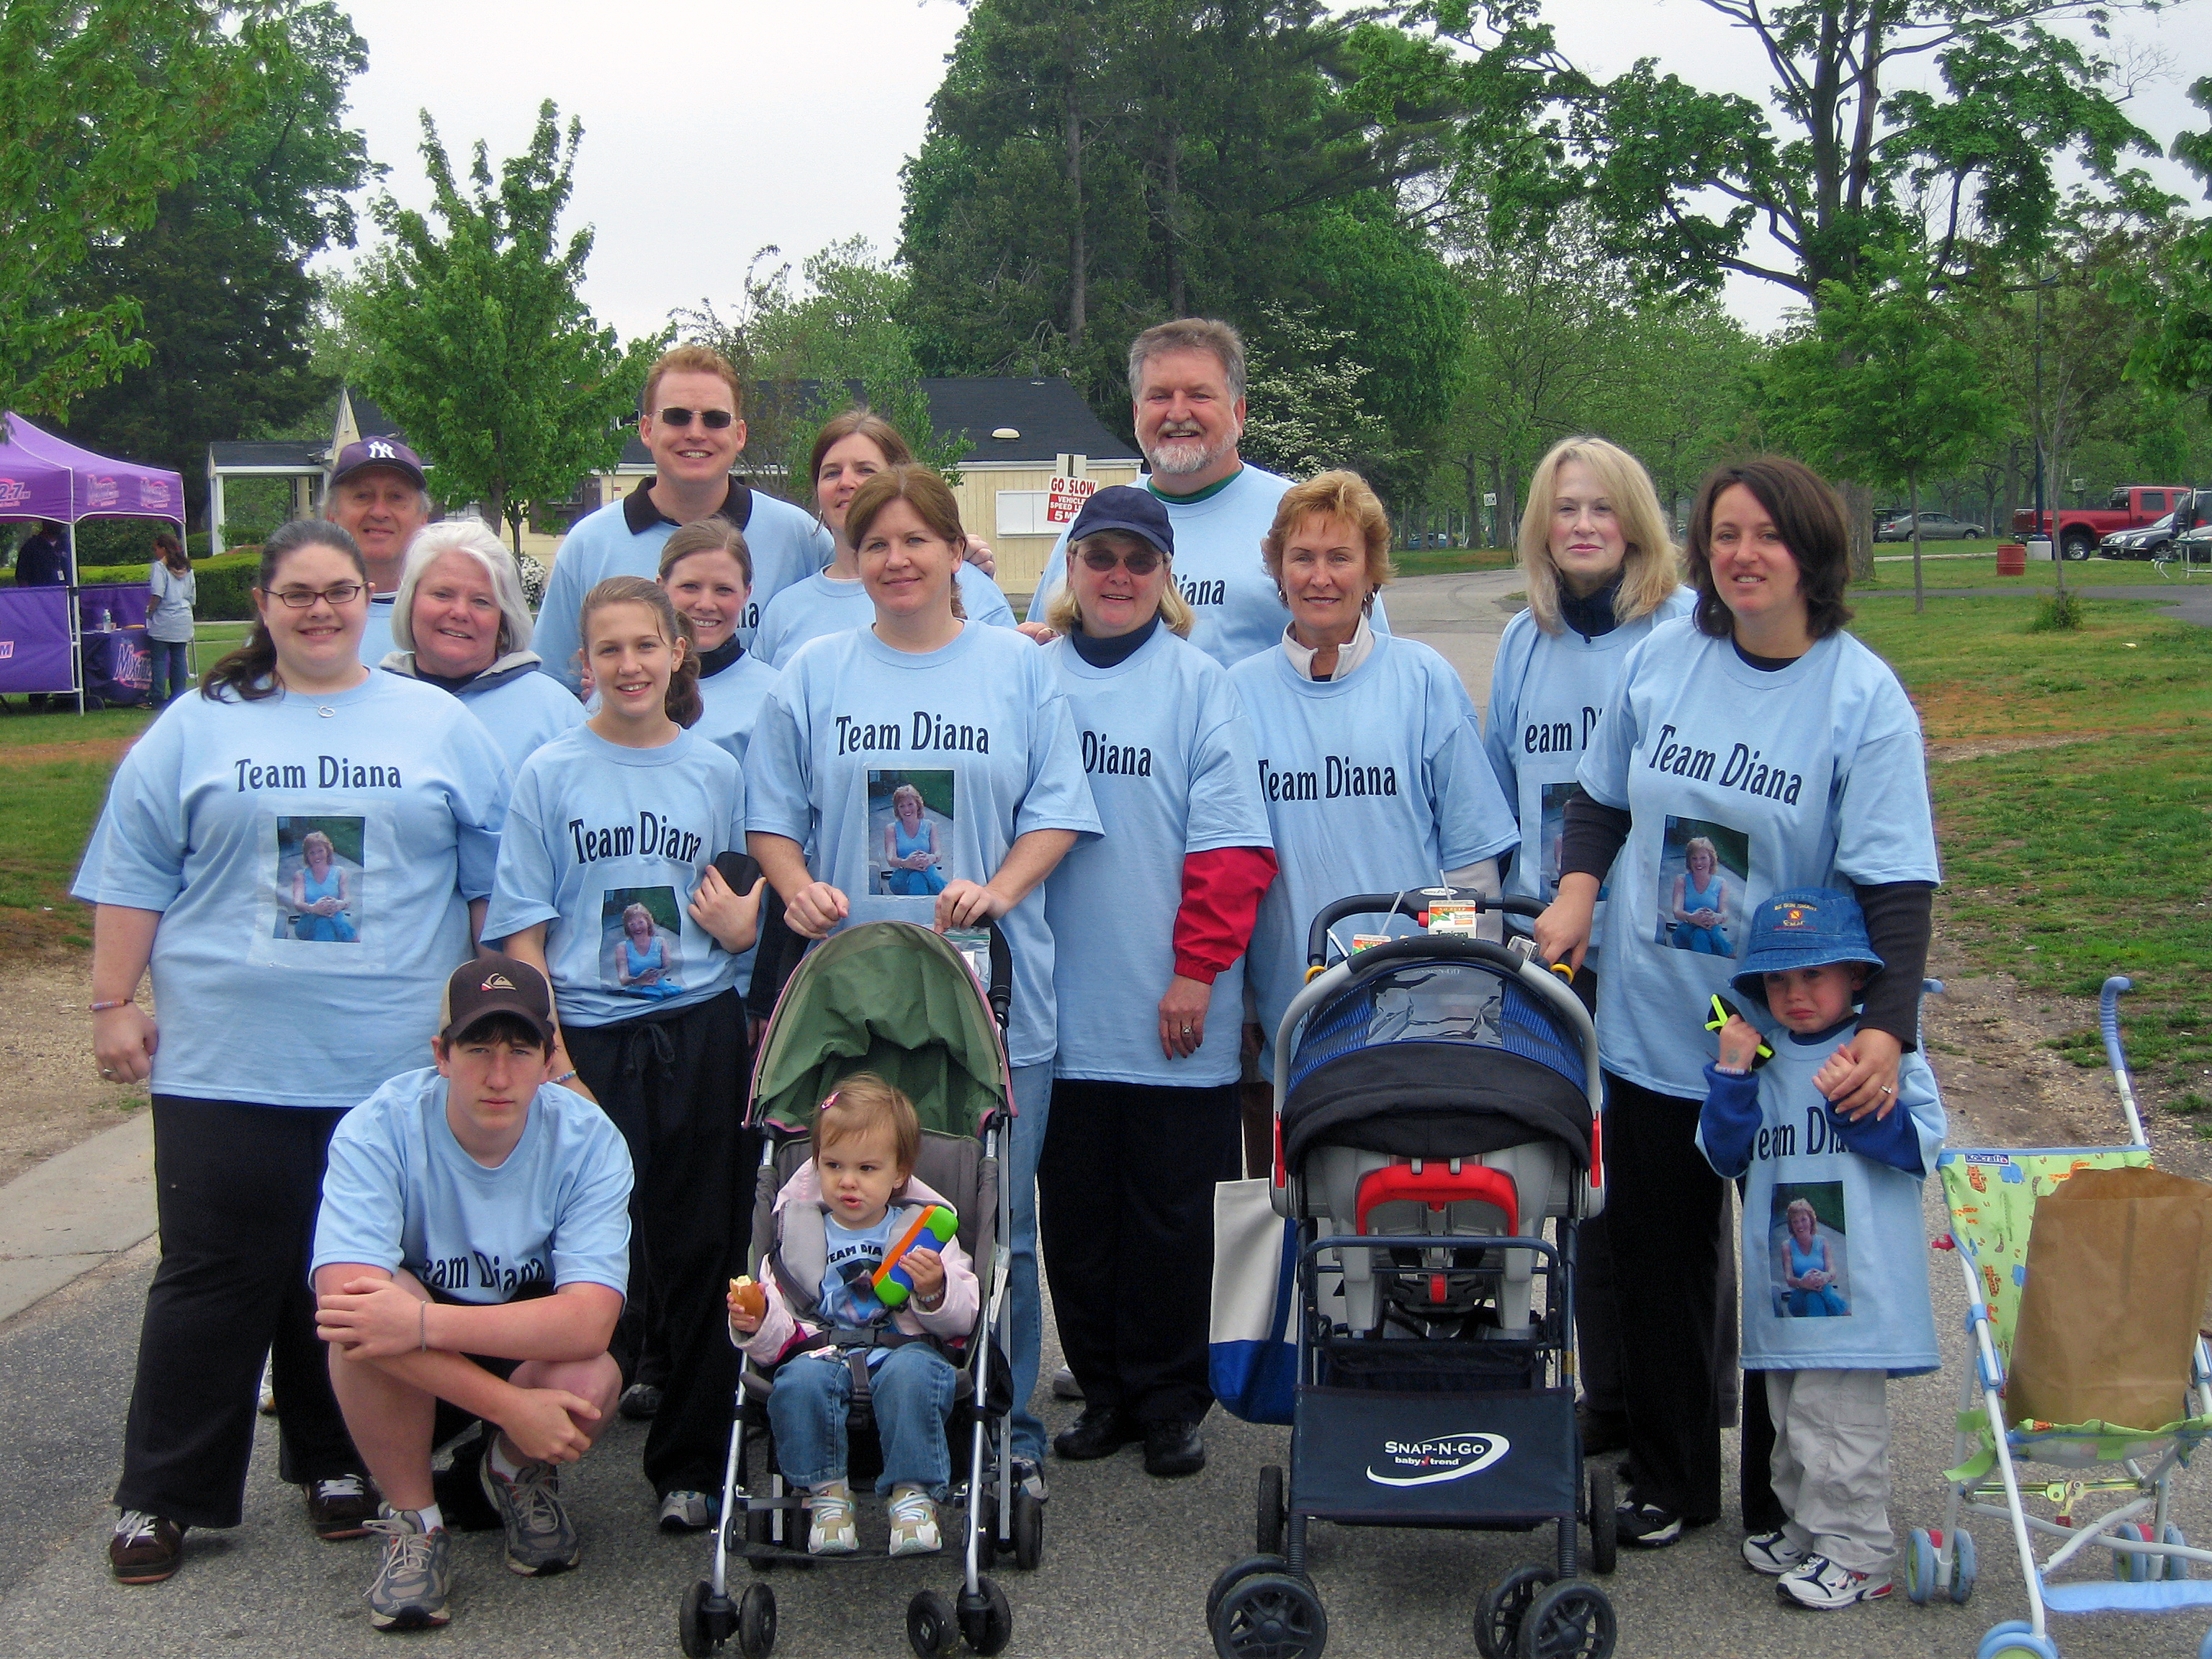 Team Diana Honoring the Memory of Diana Shannon